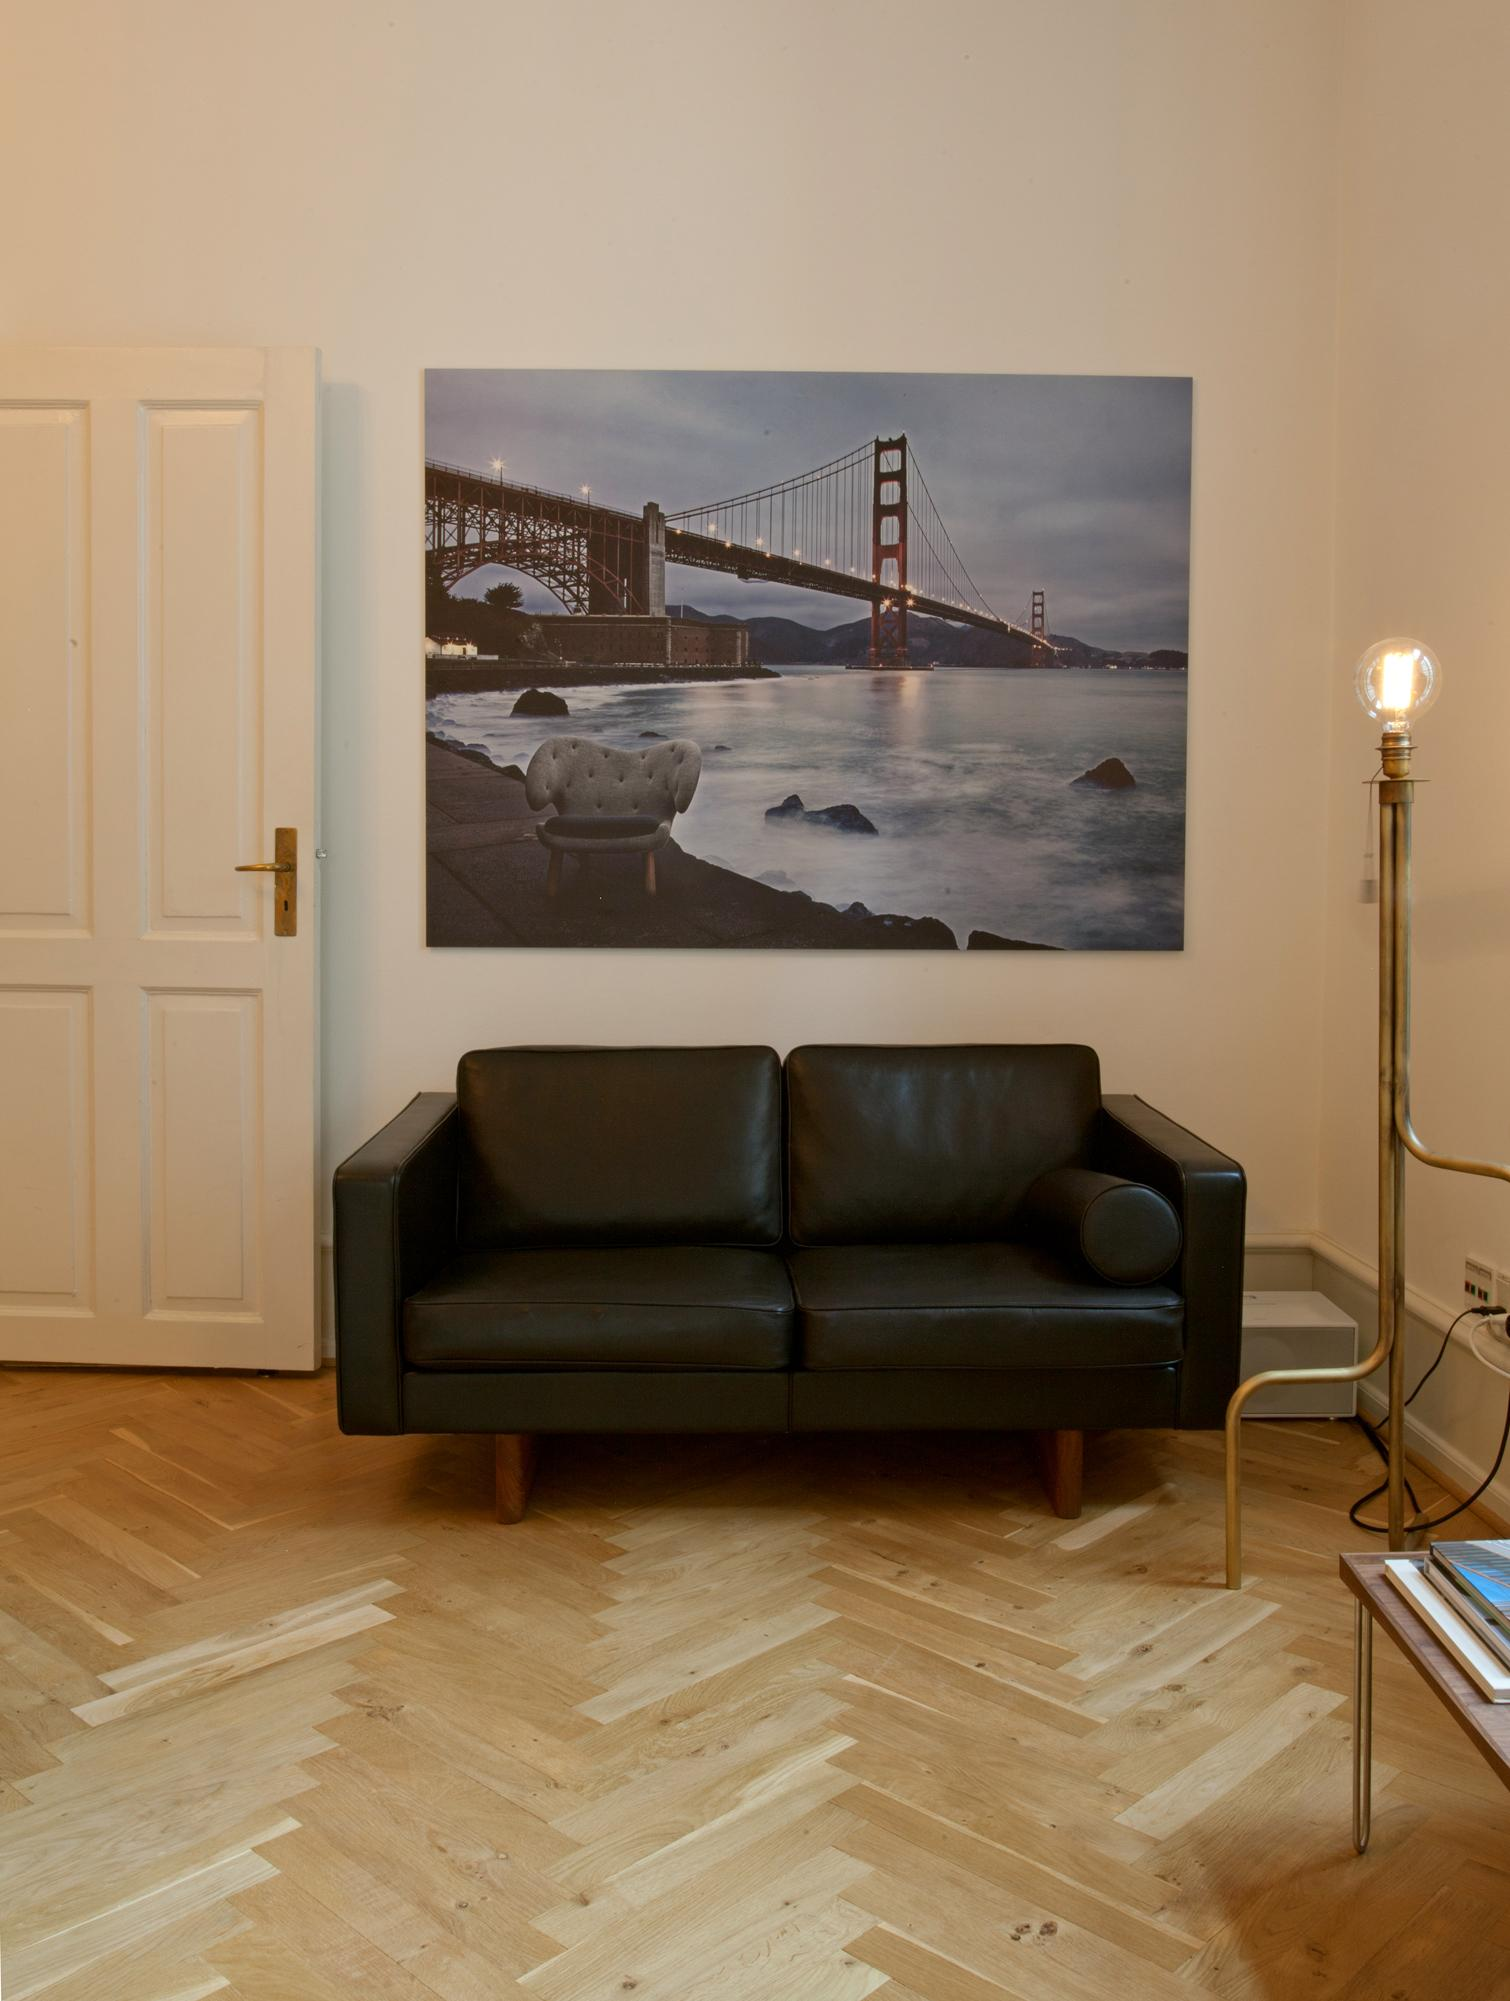 Fotodruck mit Golden Gate Bridge #ledersofa #wandgestaltung #fischgrätparkett #zimmergestaltung ©Onecollection